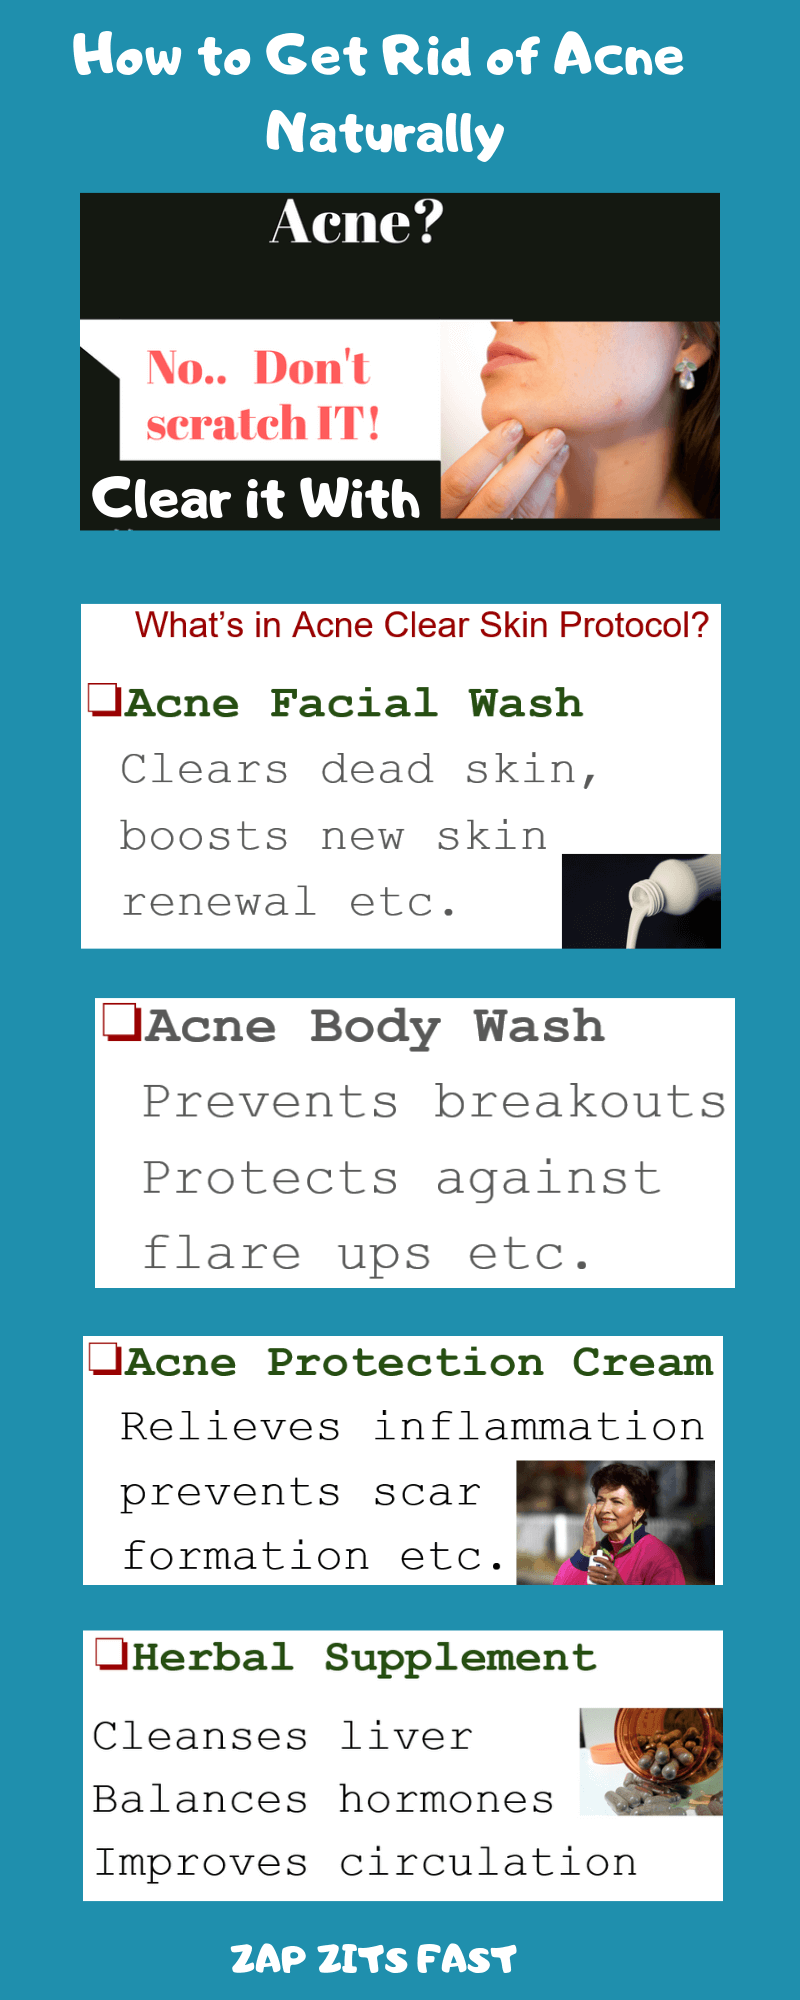 How to get rid of acne, fade acne scars and get a flawless skin